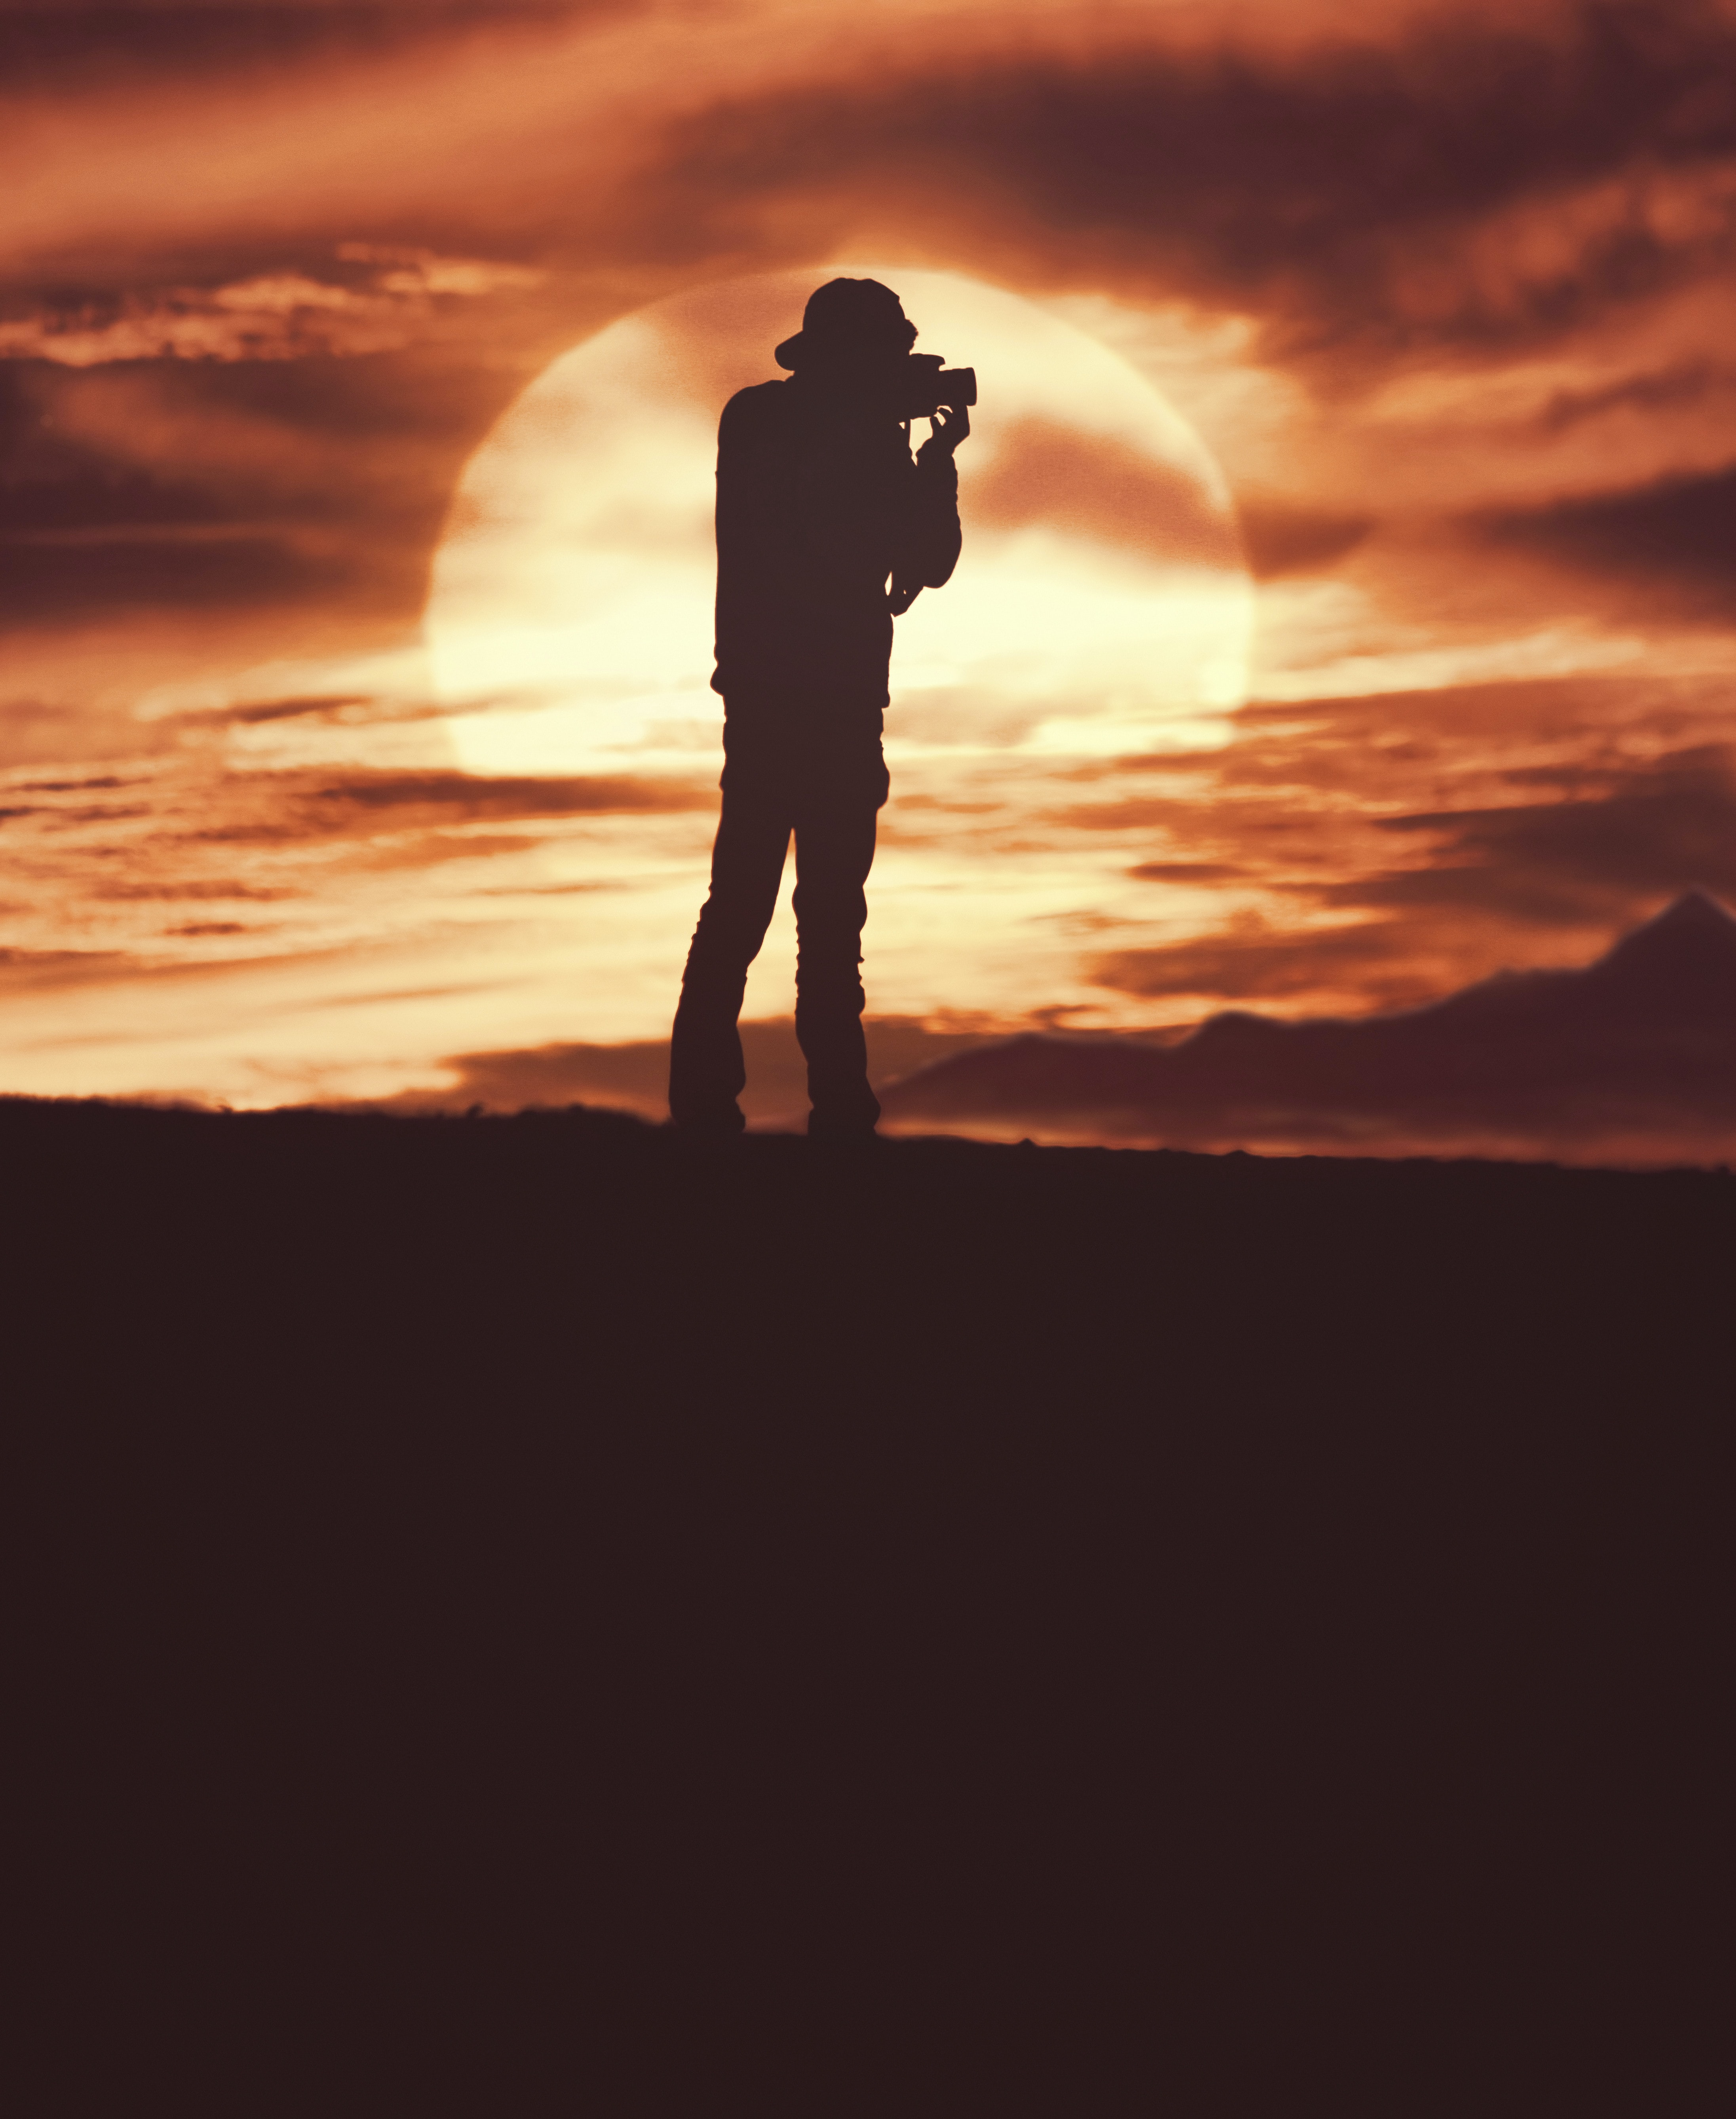 A silhouette of a man in a hat holding a camera in front of a cloudy orange sunset sky, Asilah, Morocco